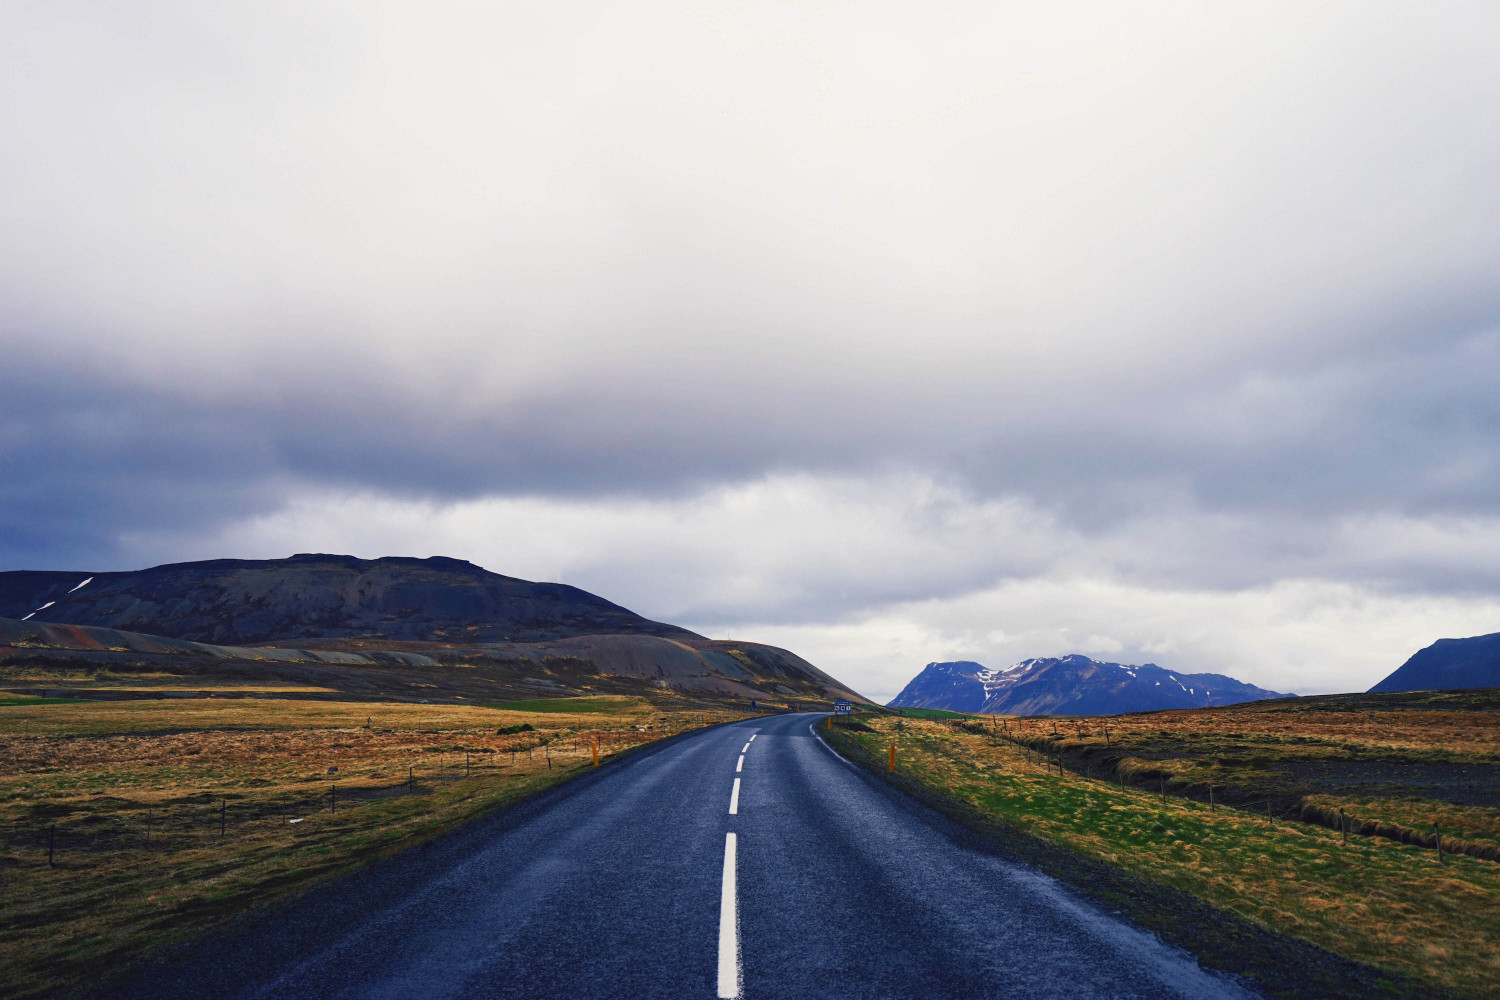 iceland-lonely-road-dante-vincent-photography-105